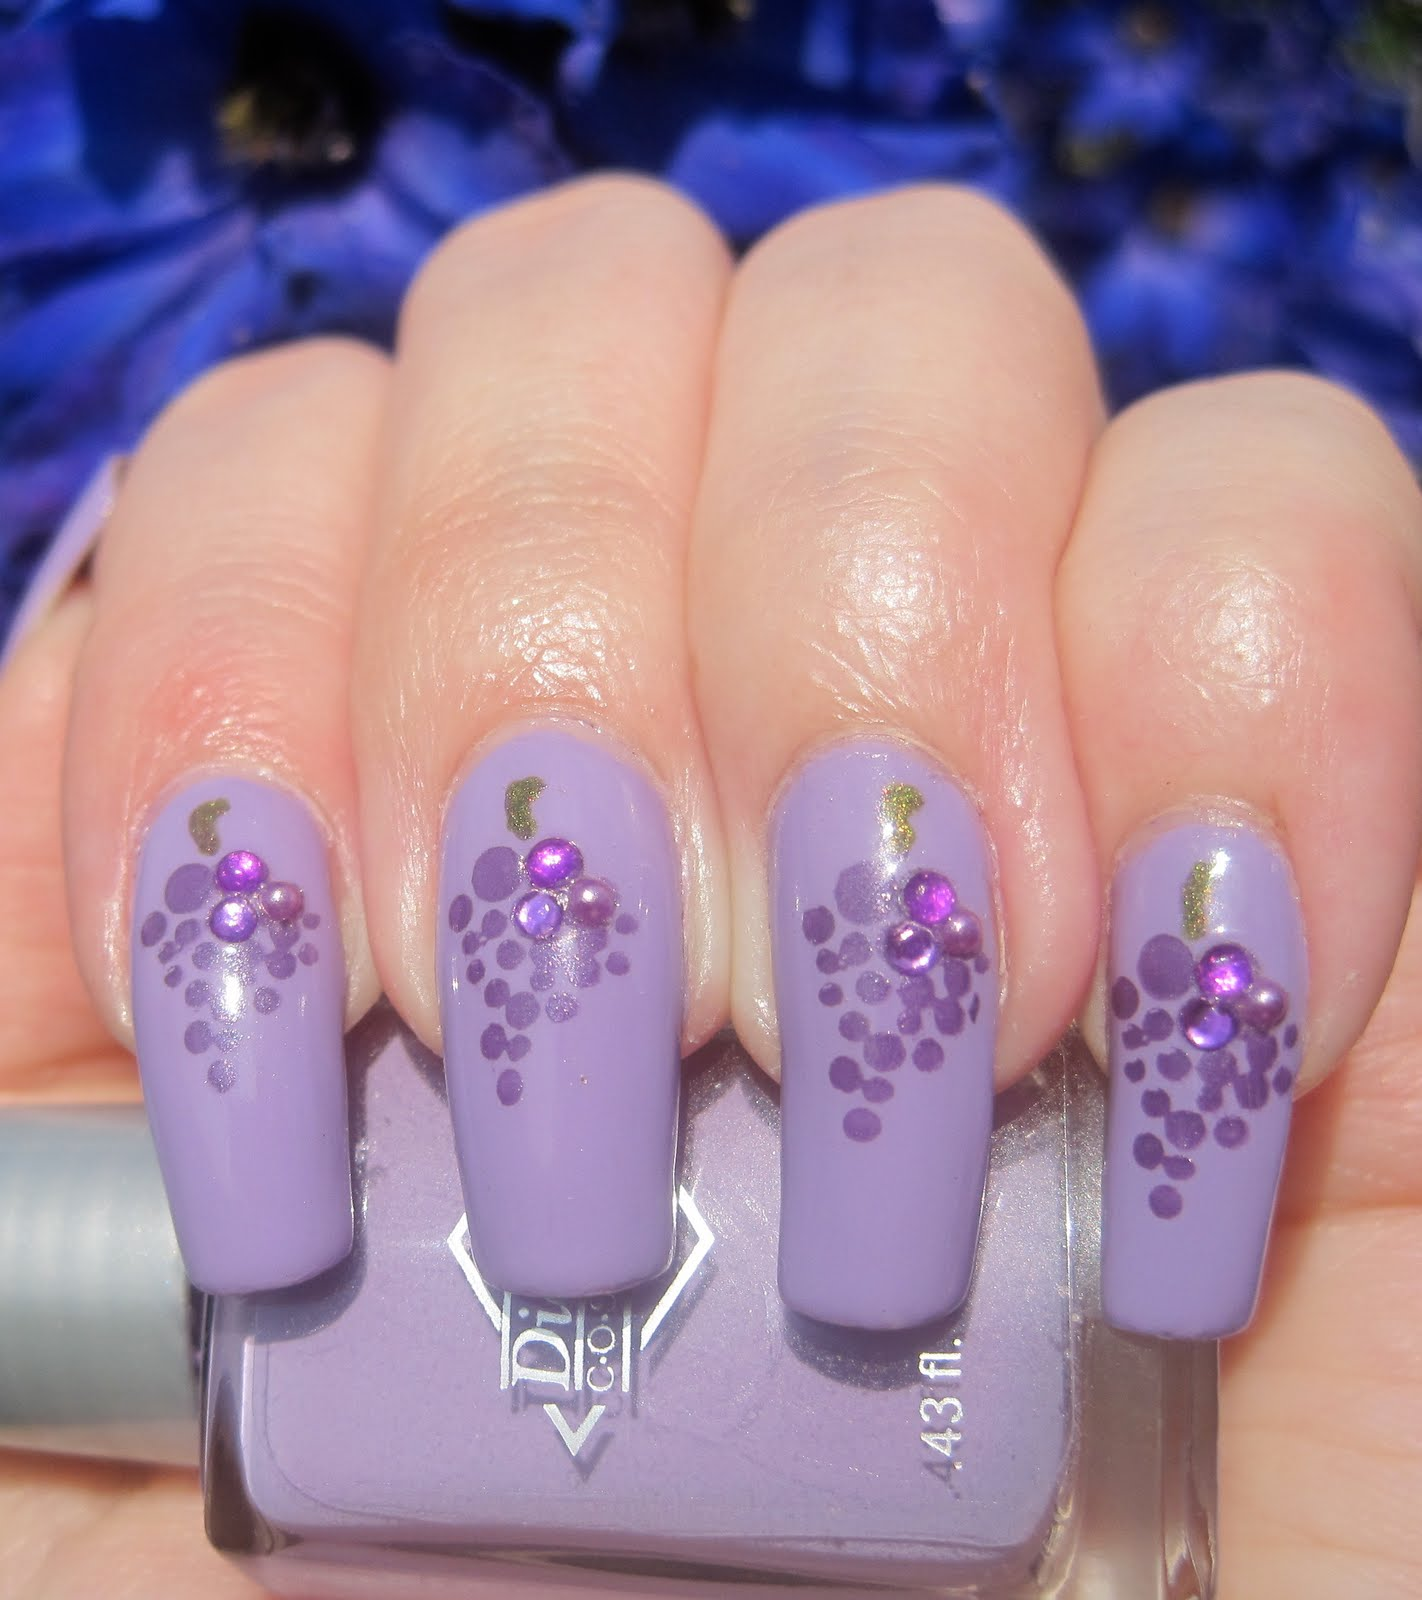 Craft Nail: Bejeweled grapes